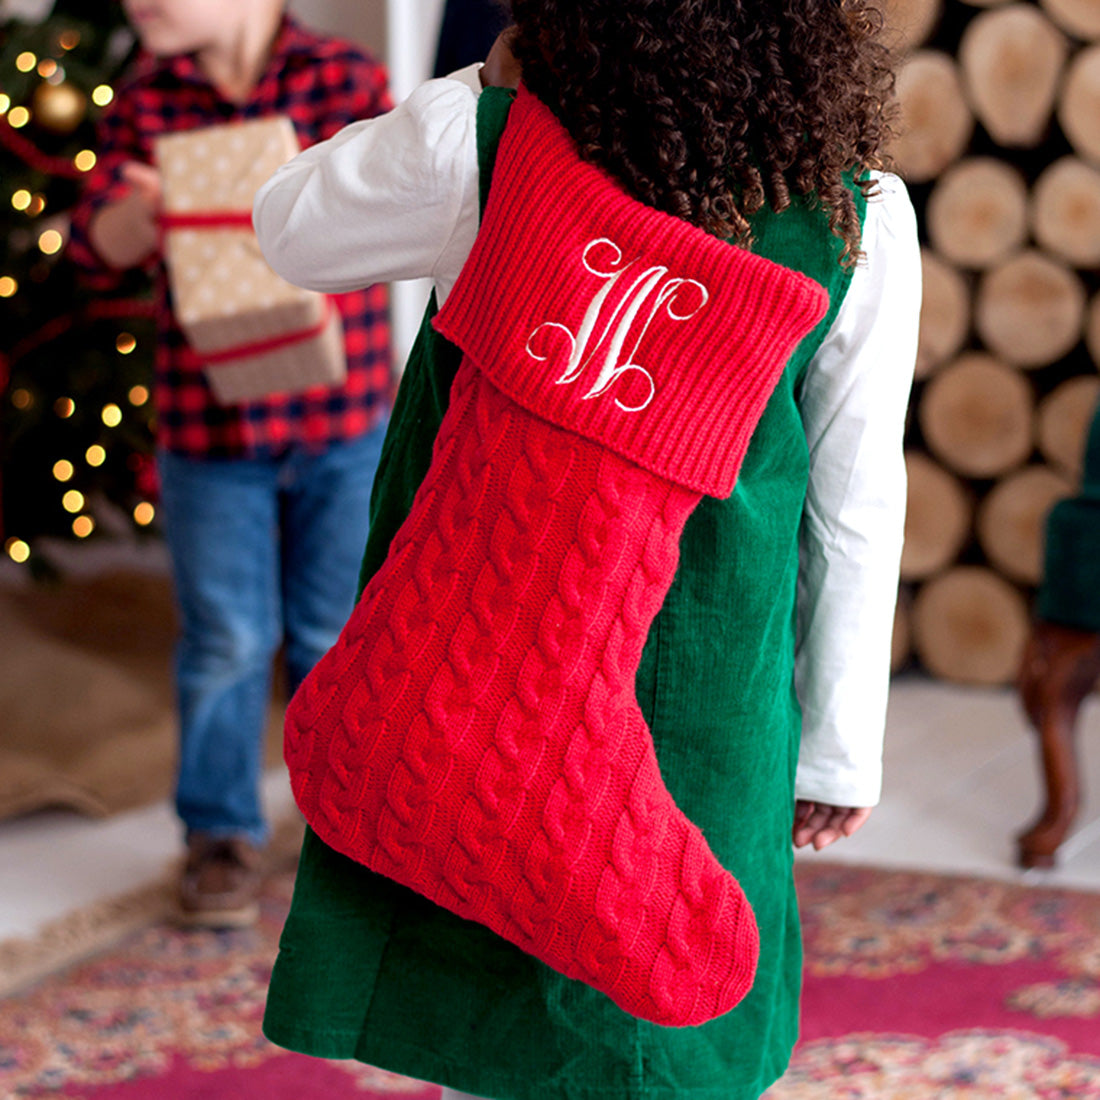 Classic Cable Knit Christmas Stocking in Red - no Monogram,Christmas stocking - Dirt Road Divas Boutique